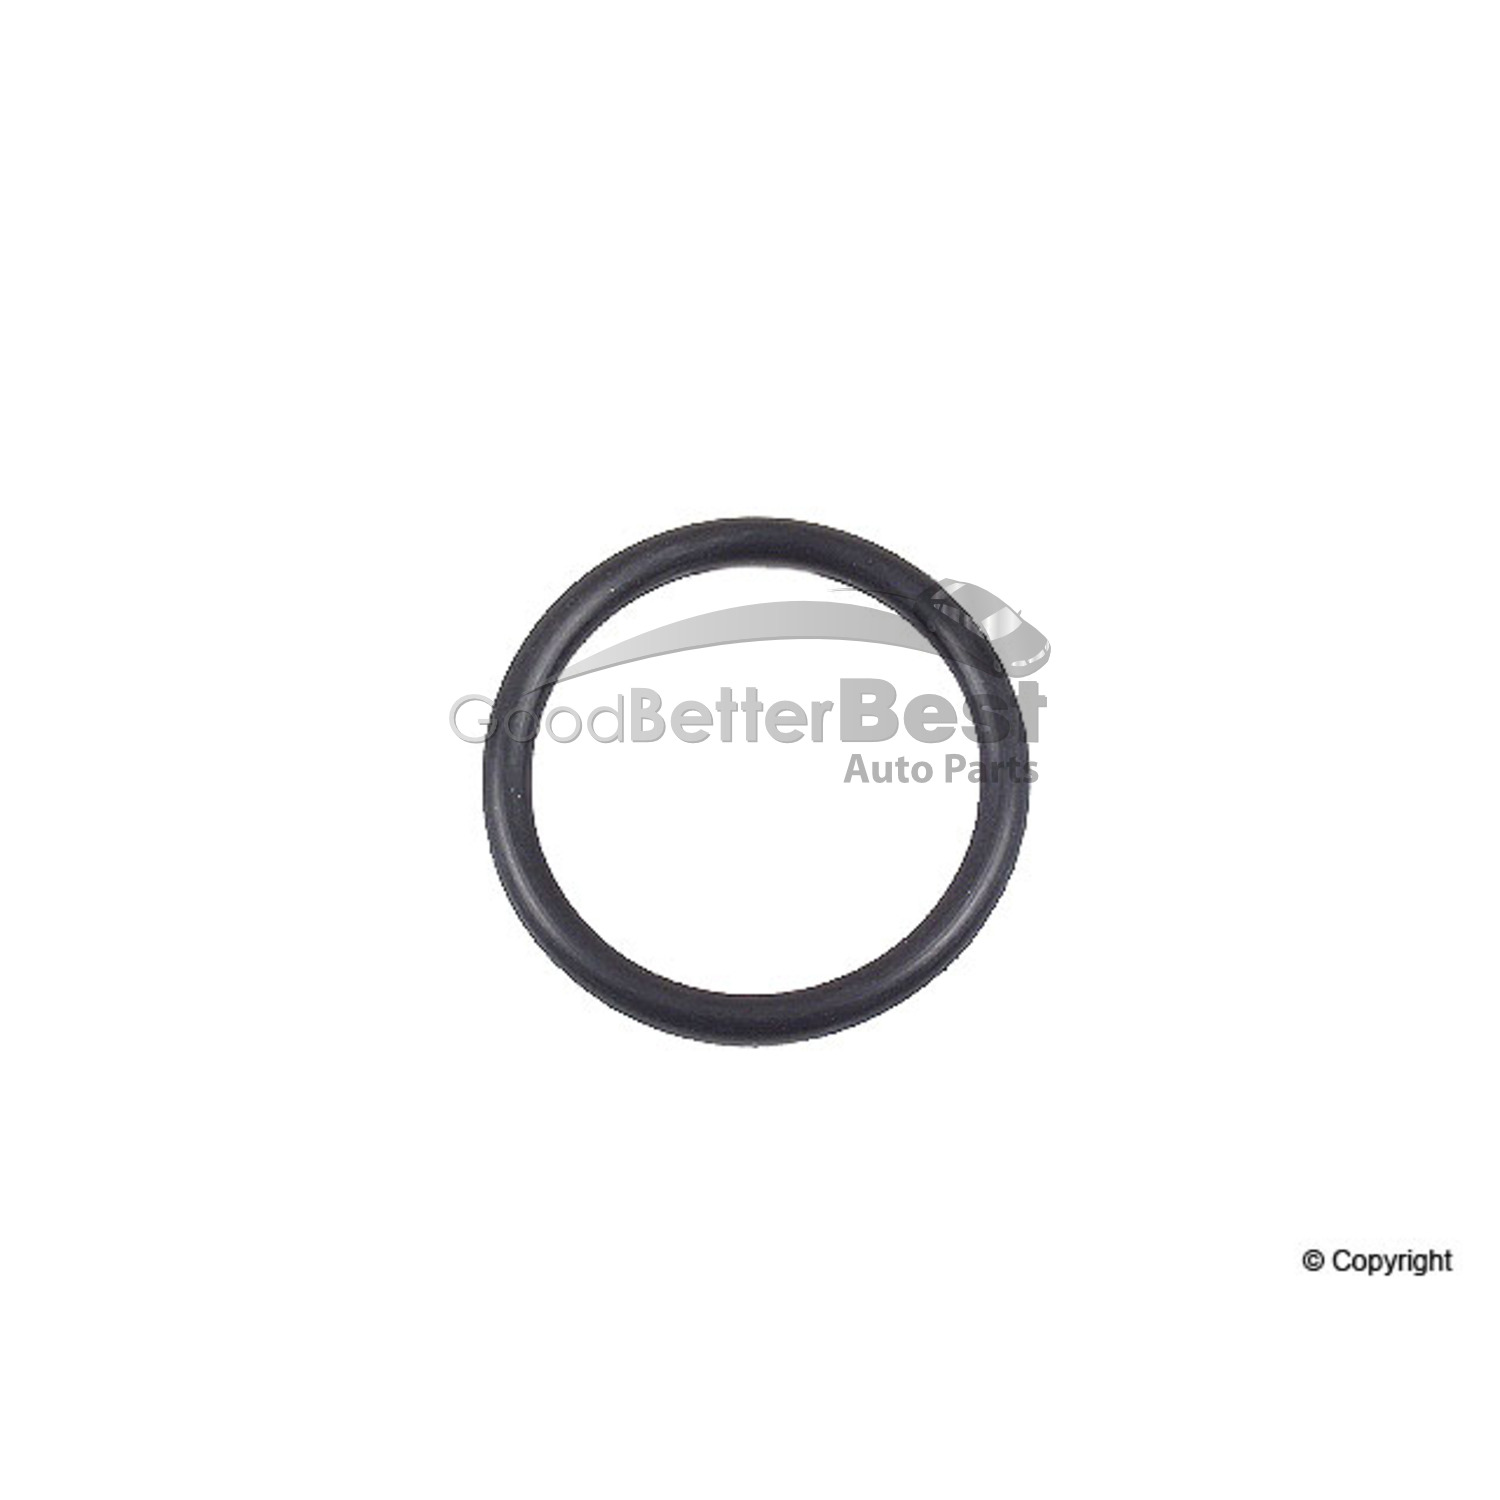 New Crp Engine Coolant Pipe O Ring Ec